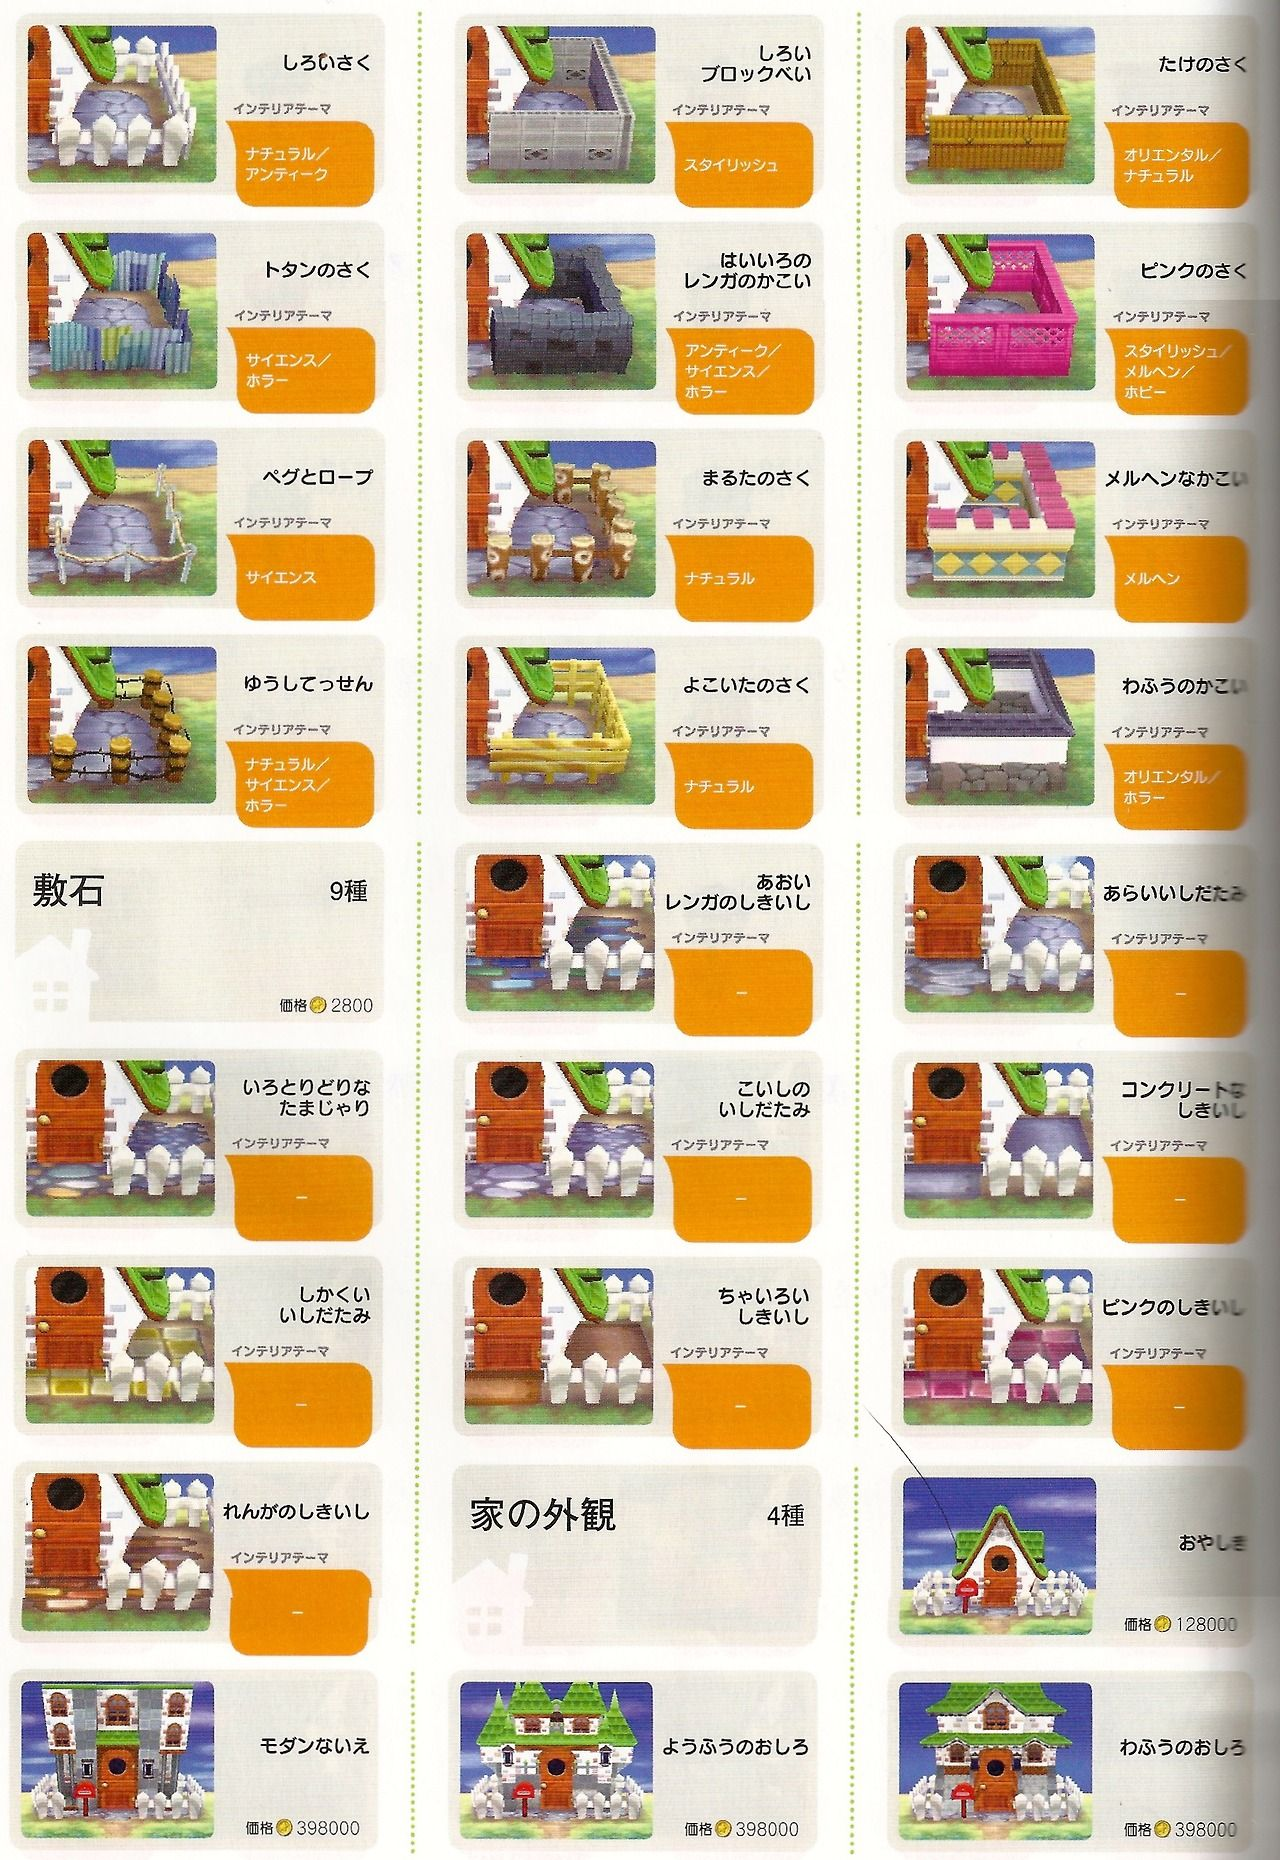 Fences Cont Paving Stones House Styles Various Exterior Themes Source Comfort Crossing Animal Crossing Acnl Animal Crossing Guide